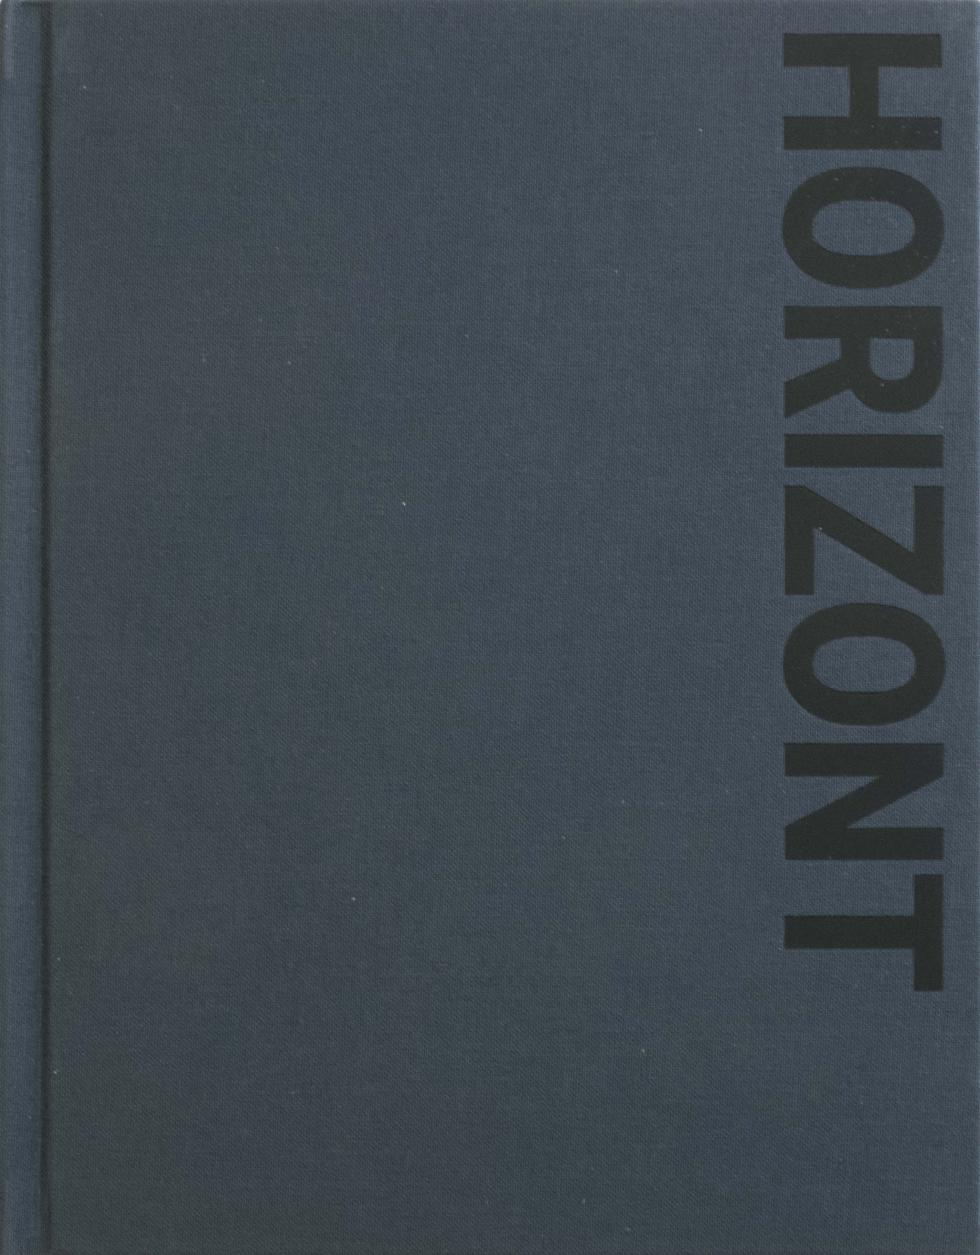 Dark blue book cover with the title Horizont in black print on the right vertical side of book.